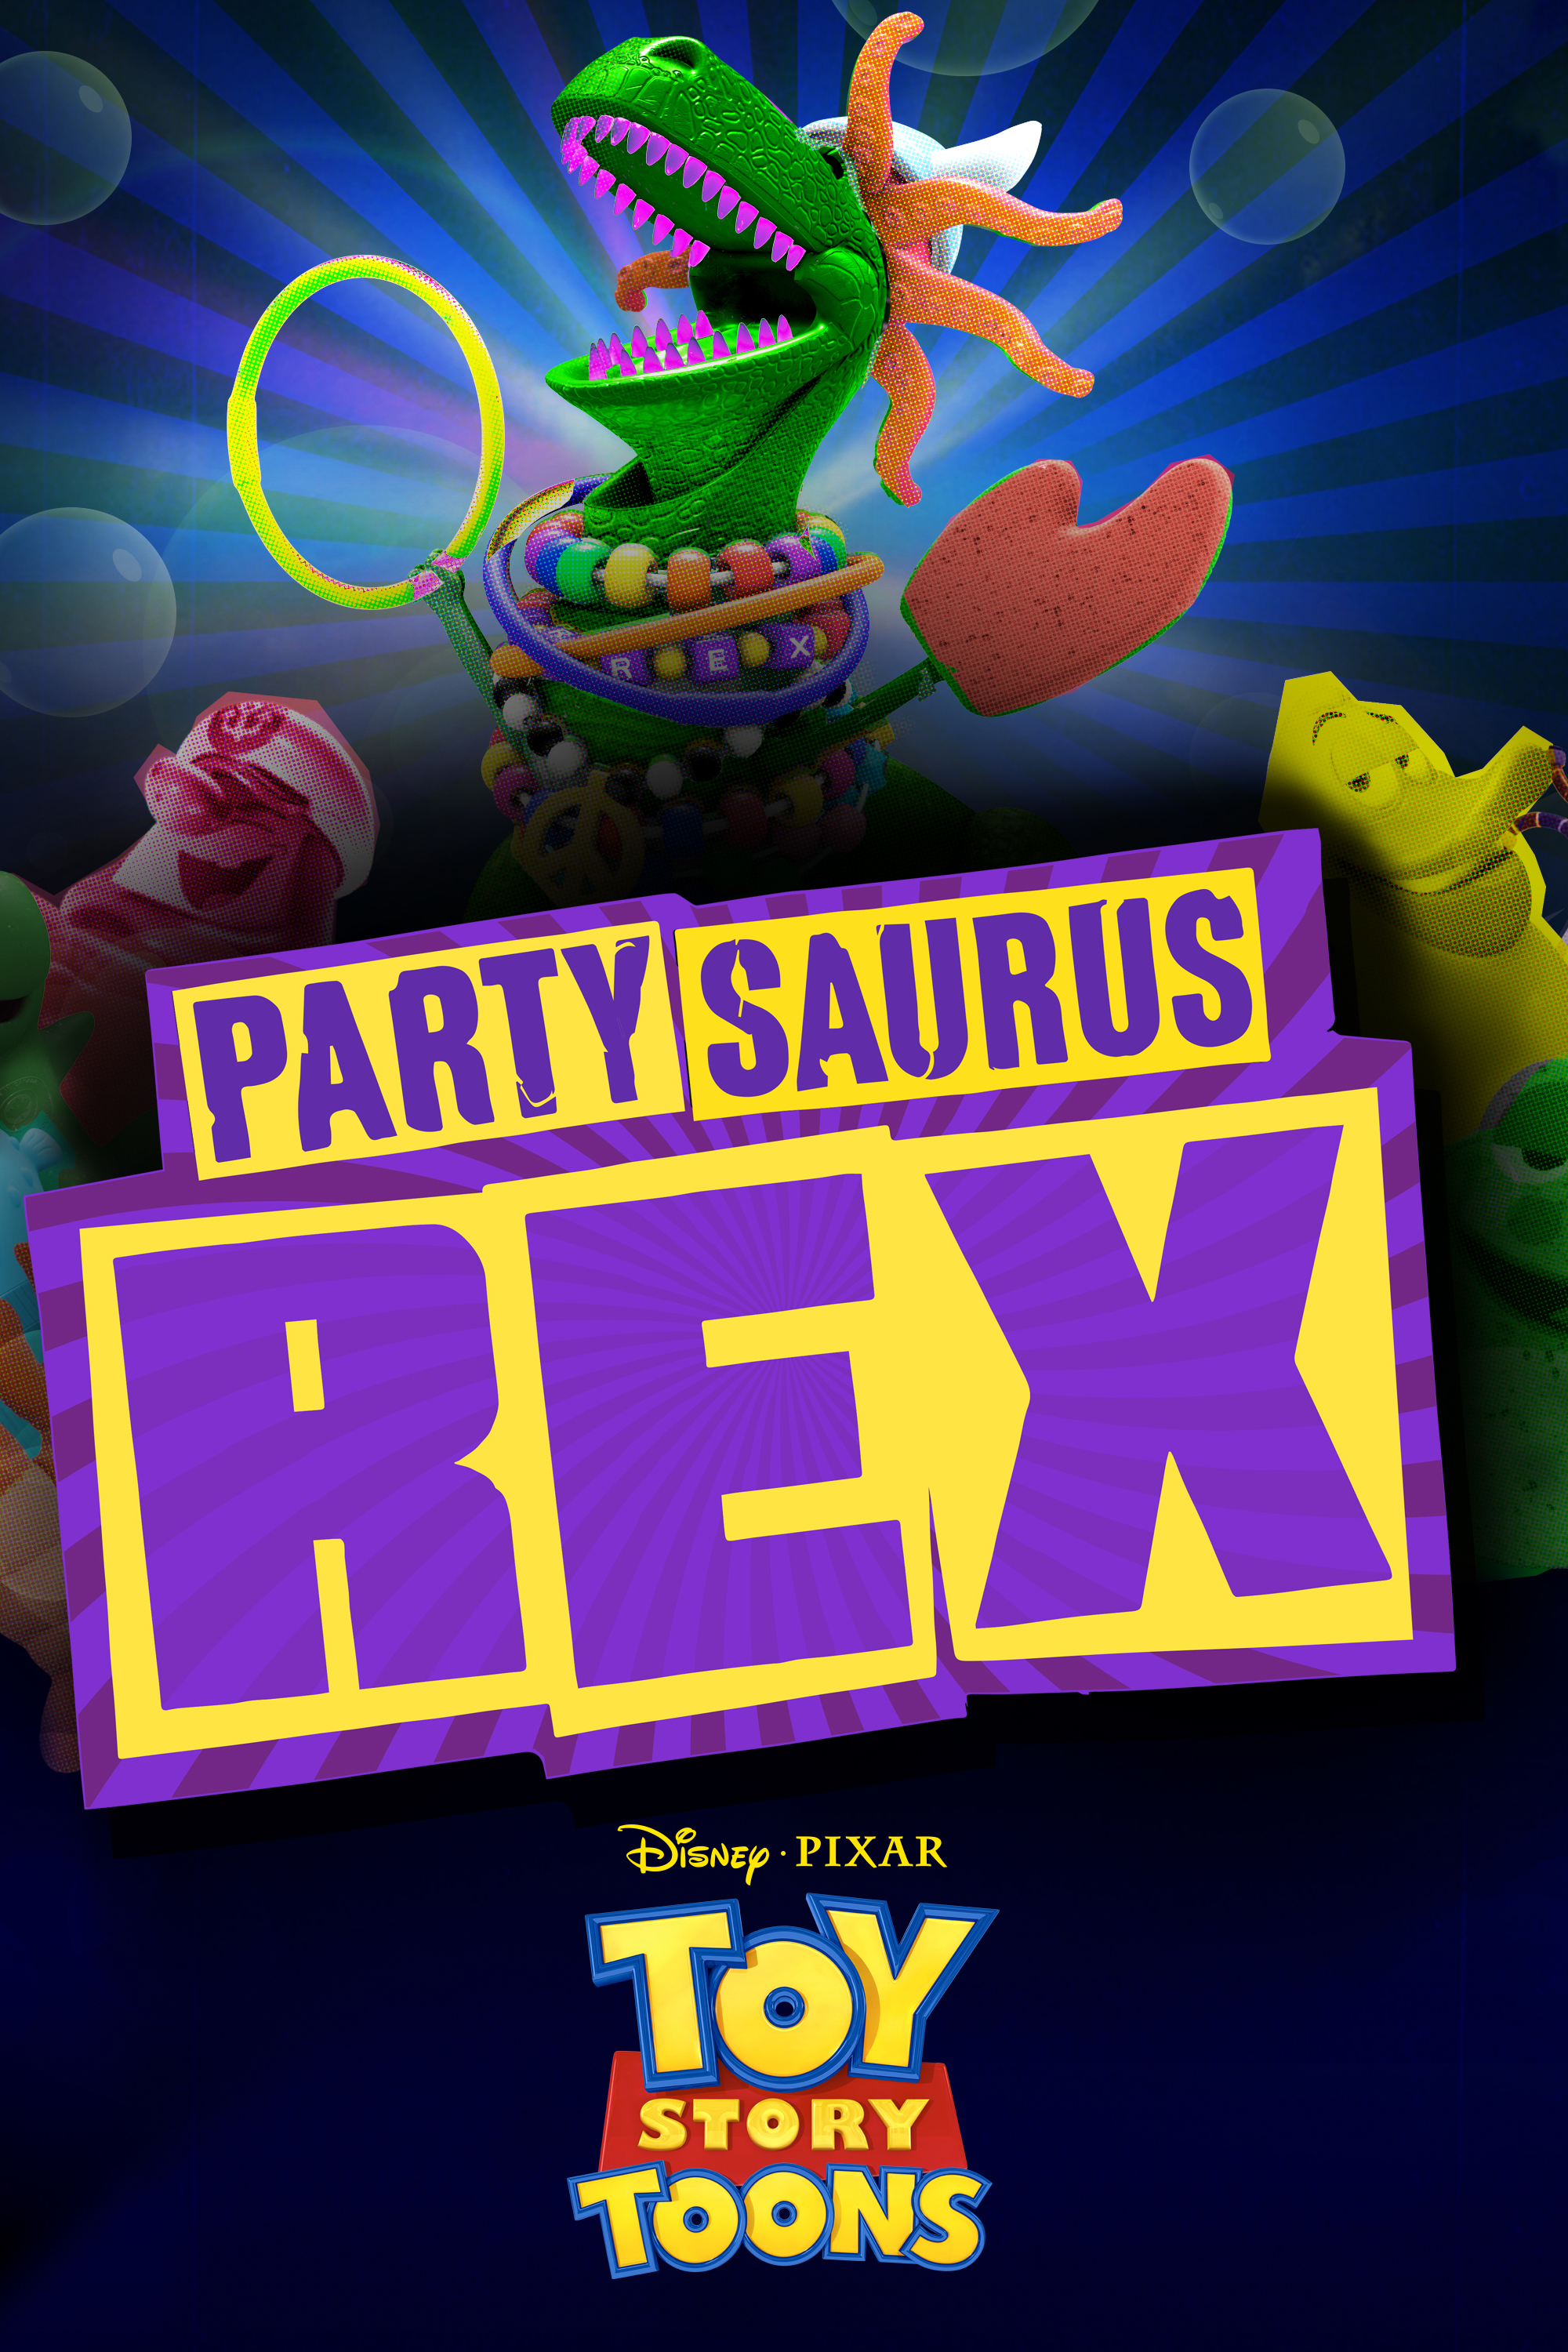 Itunes Movies Toy Story Toons Partysaurus Rex